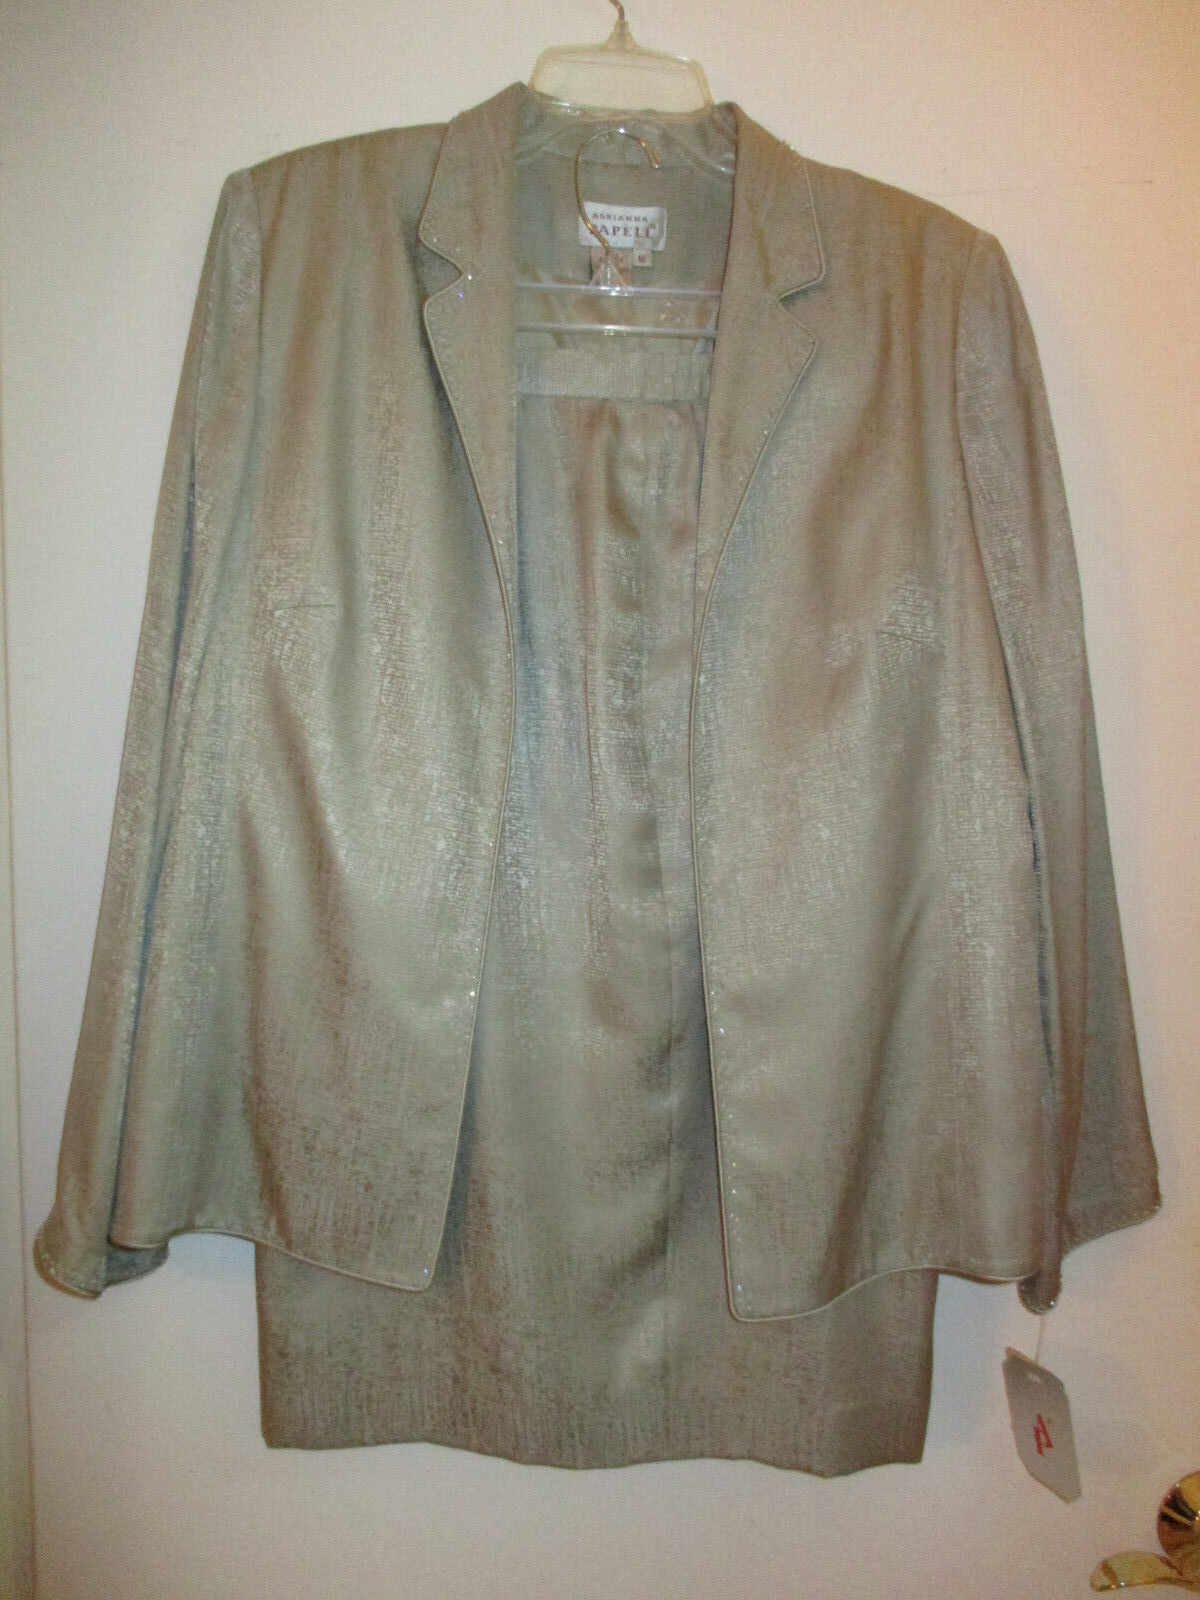 Adrianna Papell 3 pc Mother of the Bride sz 16 beige patterned suit dress skirt